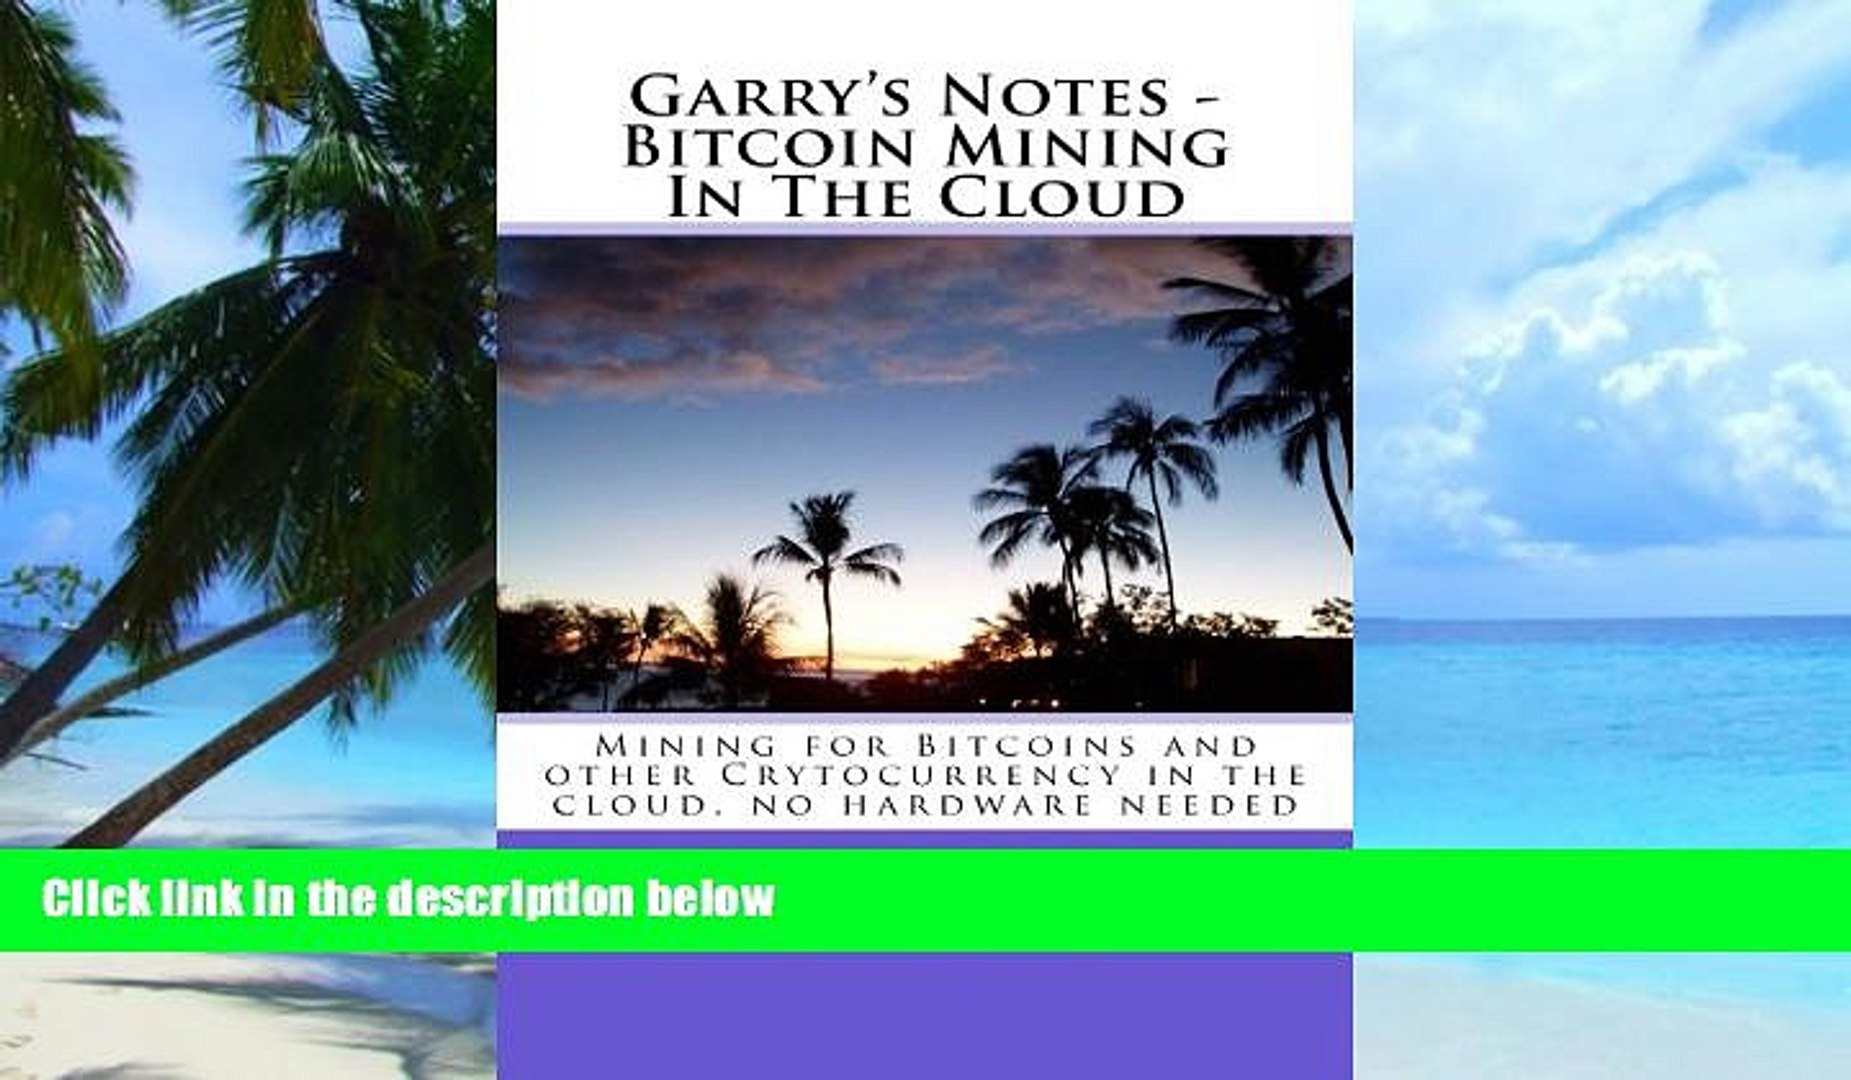 Audiobook  Garry s Notes - Bitcoin Mining In The Cloud: Mining for Bitcoins and other